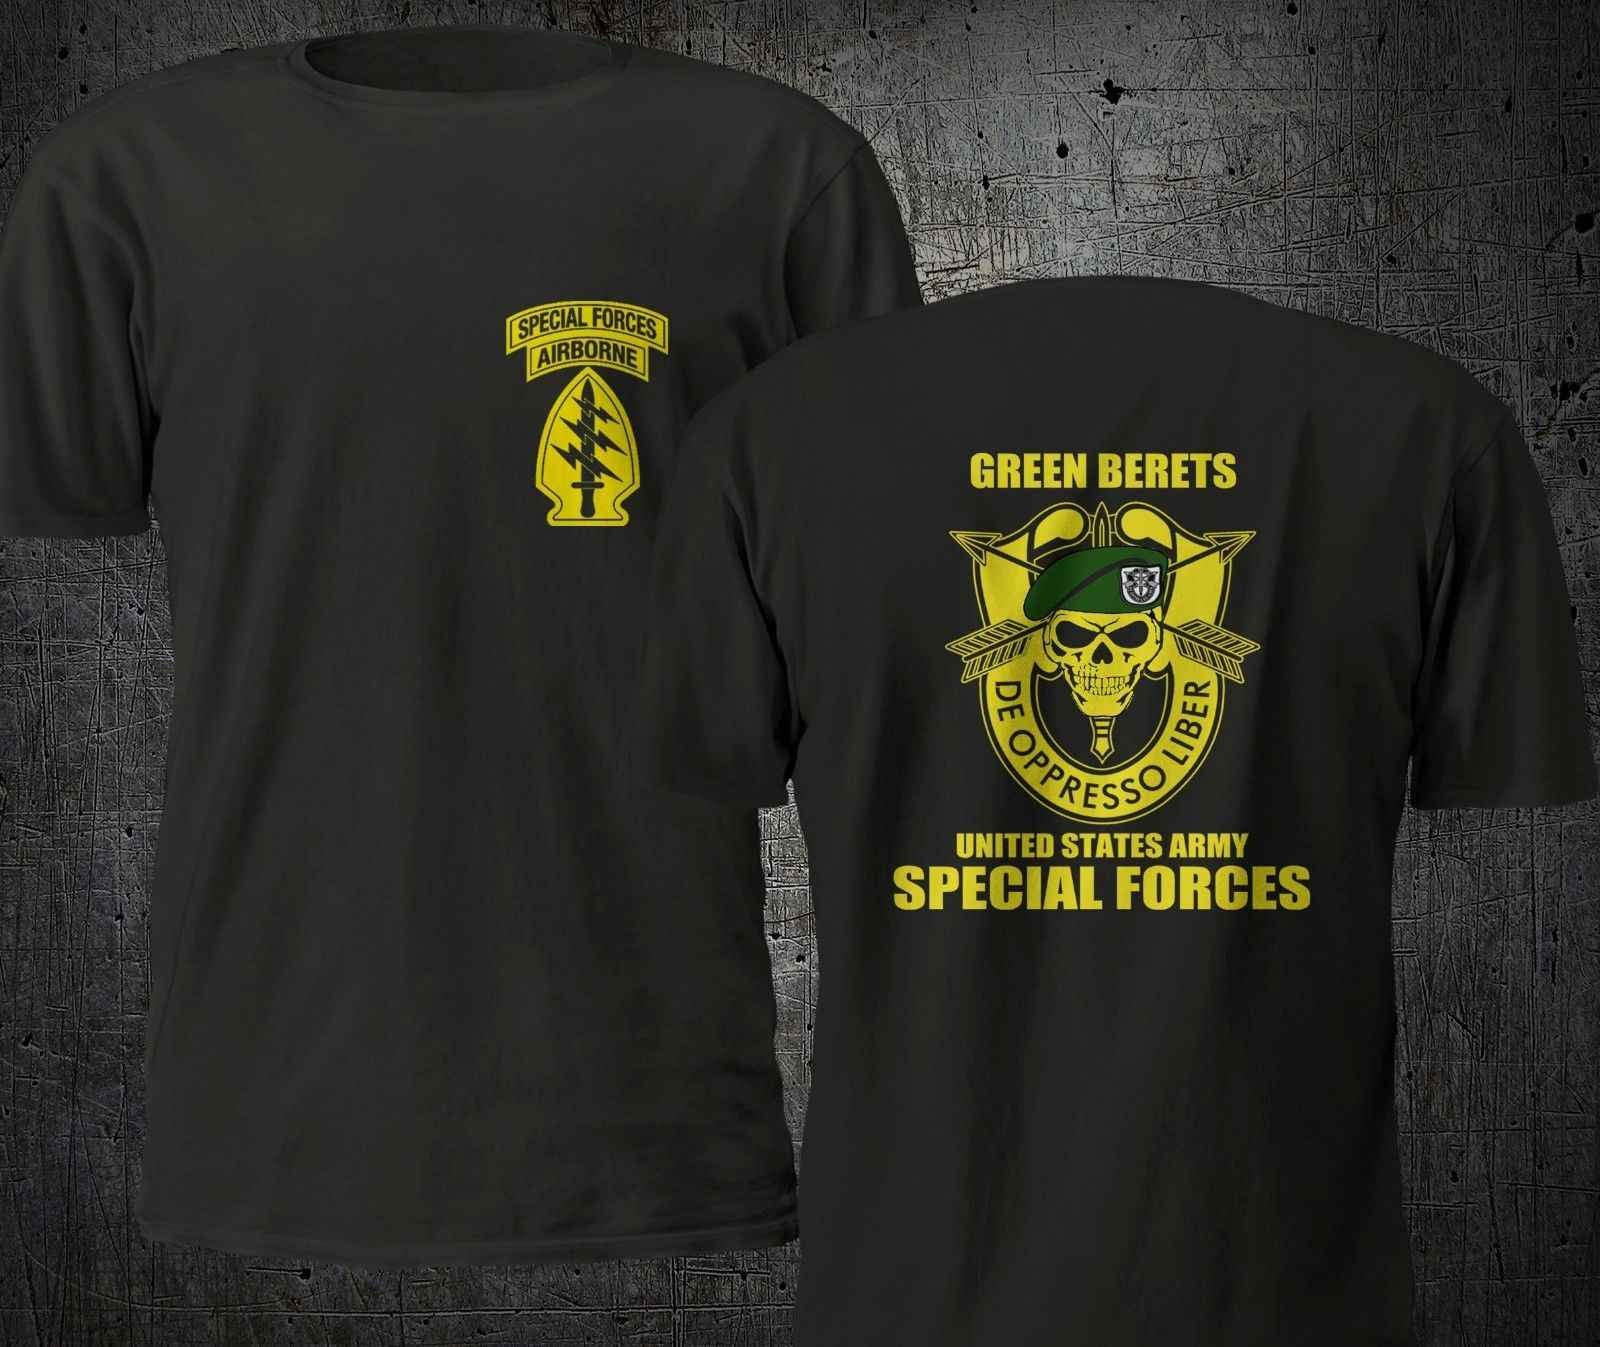 SPECIAL FORCES GROUP AIRBORNE MILITARY T SHIRT S-4XL